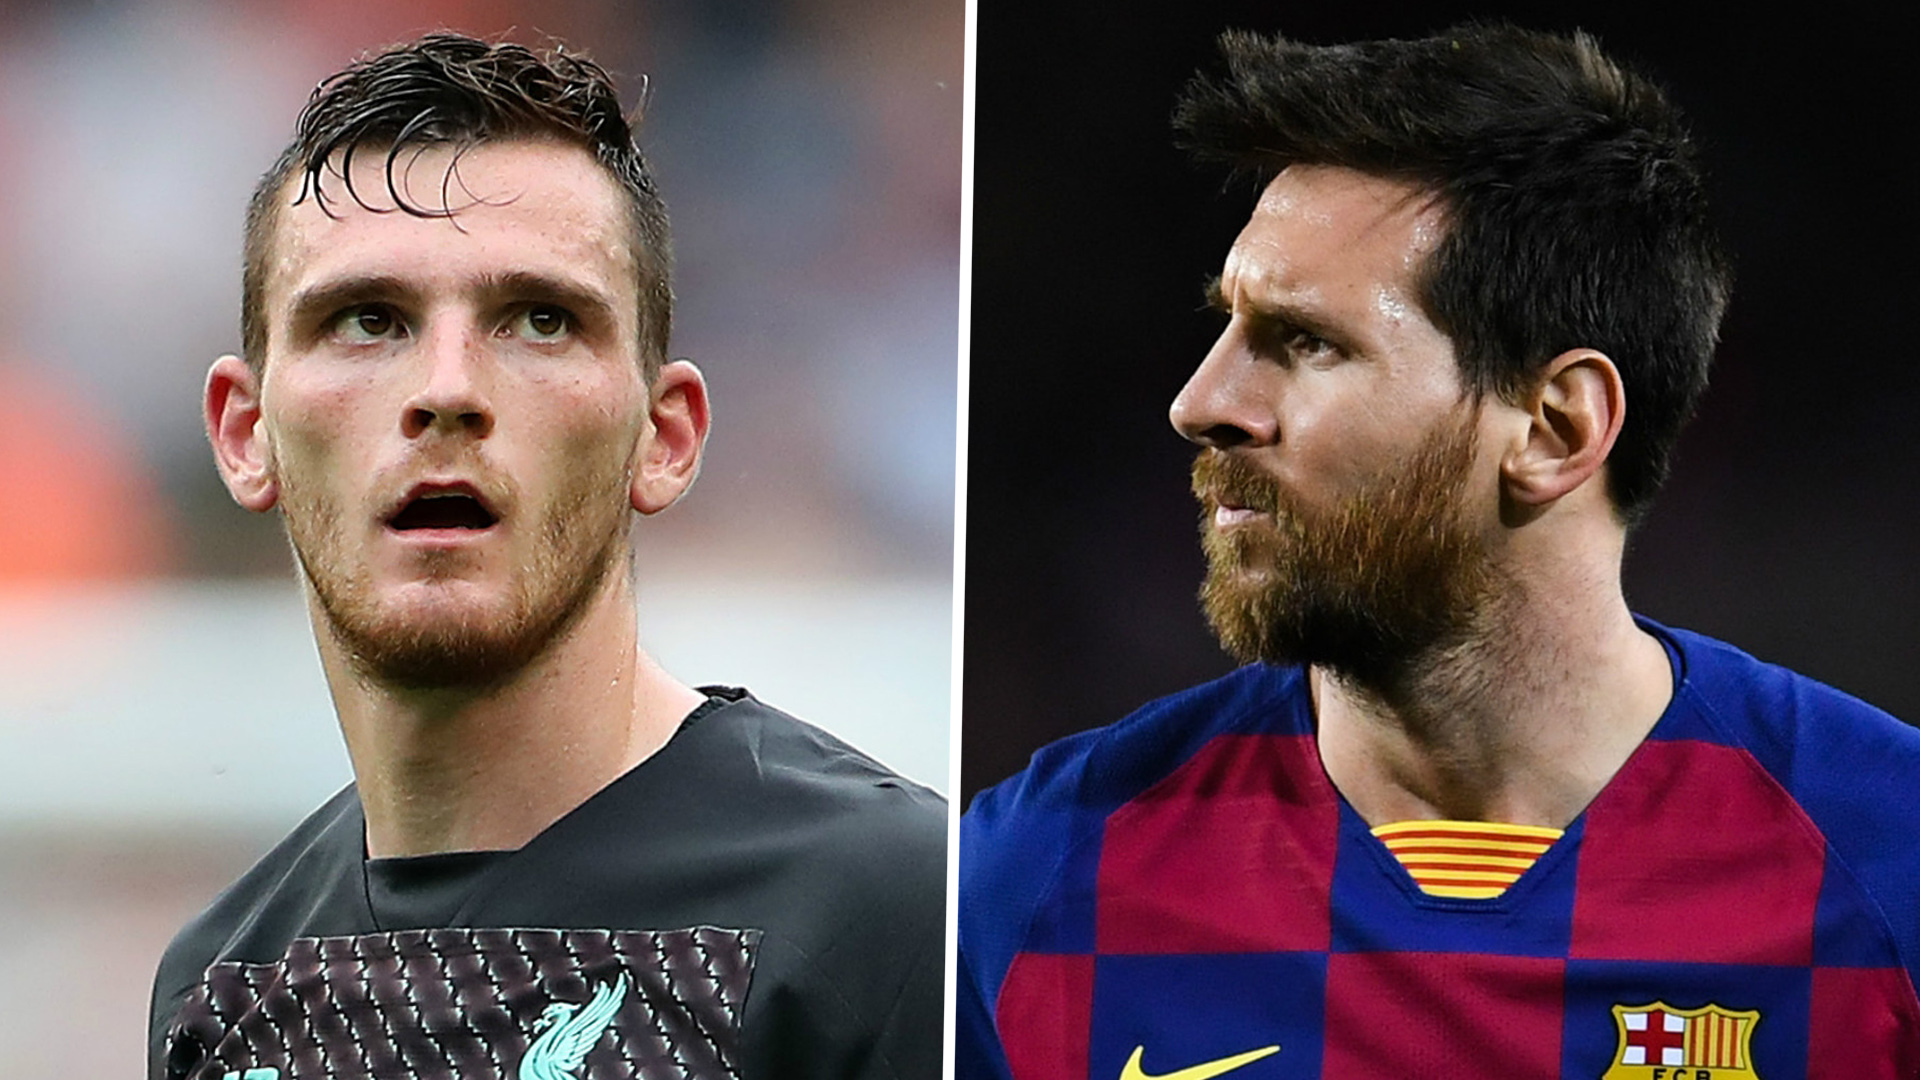 'I don't want Messi anywhere near the Premier League!' - Liverpool's Robertson hoping Barca star stays at Camp Nou